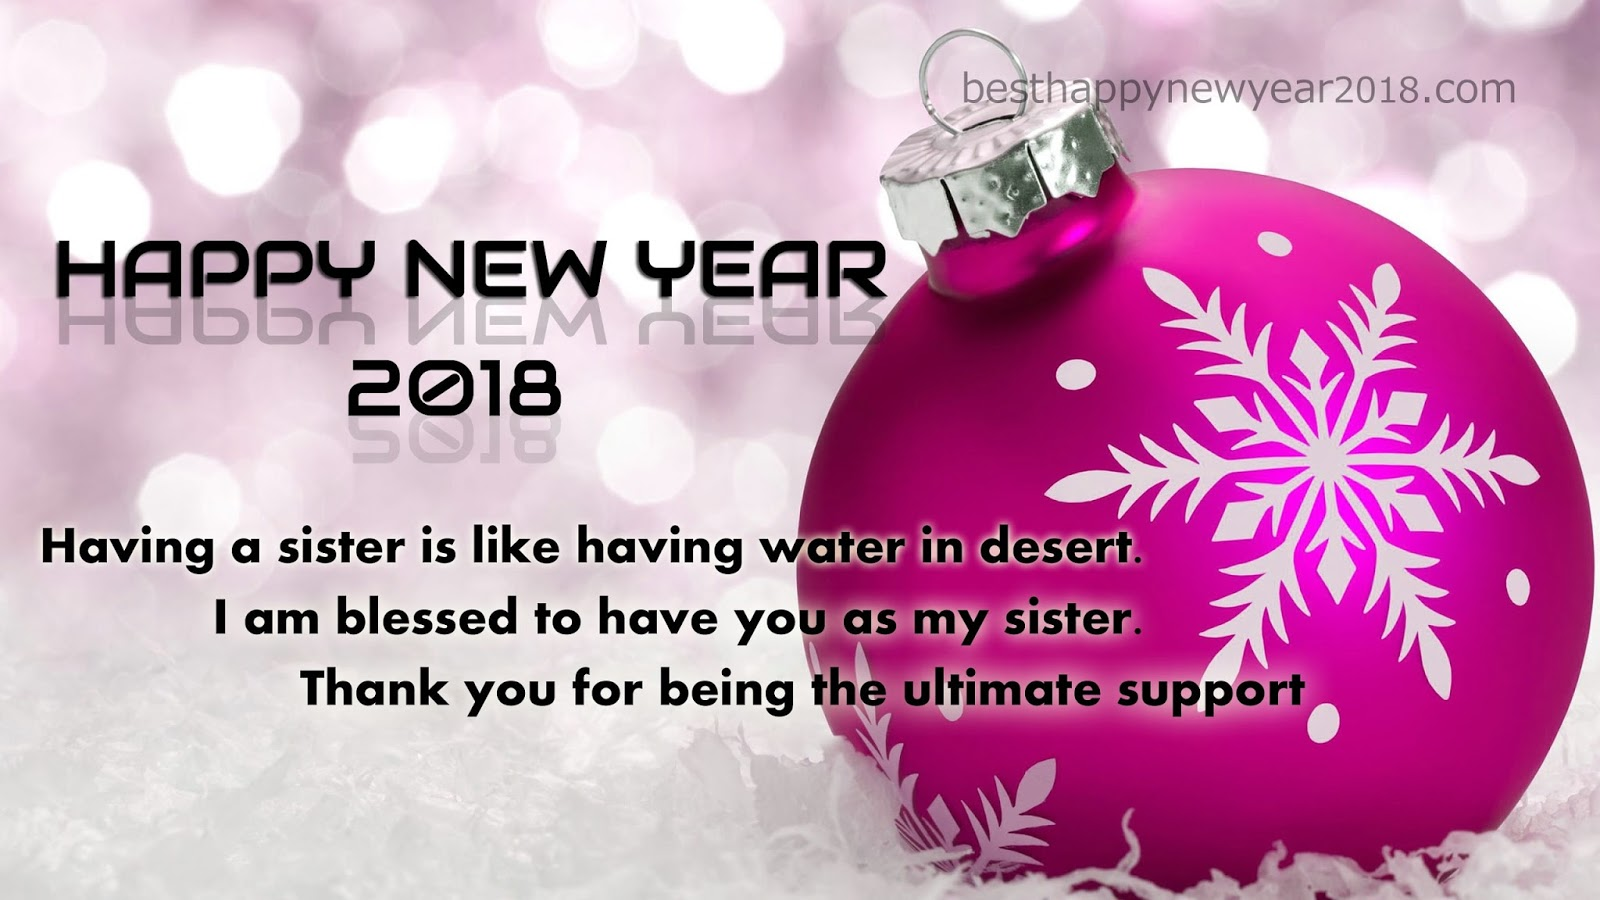 New year 2018 quotes for sister latest happy new year wishes sms thank you for being the ultimate support and happy new year new2byear2b20182bgreetings kristyandbryce Choice Image